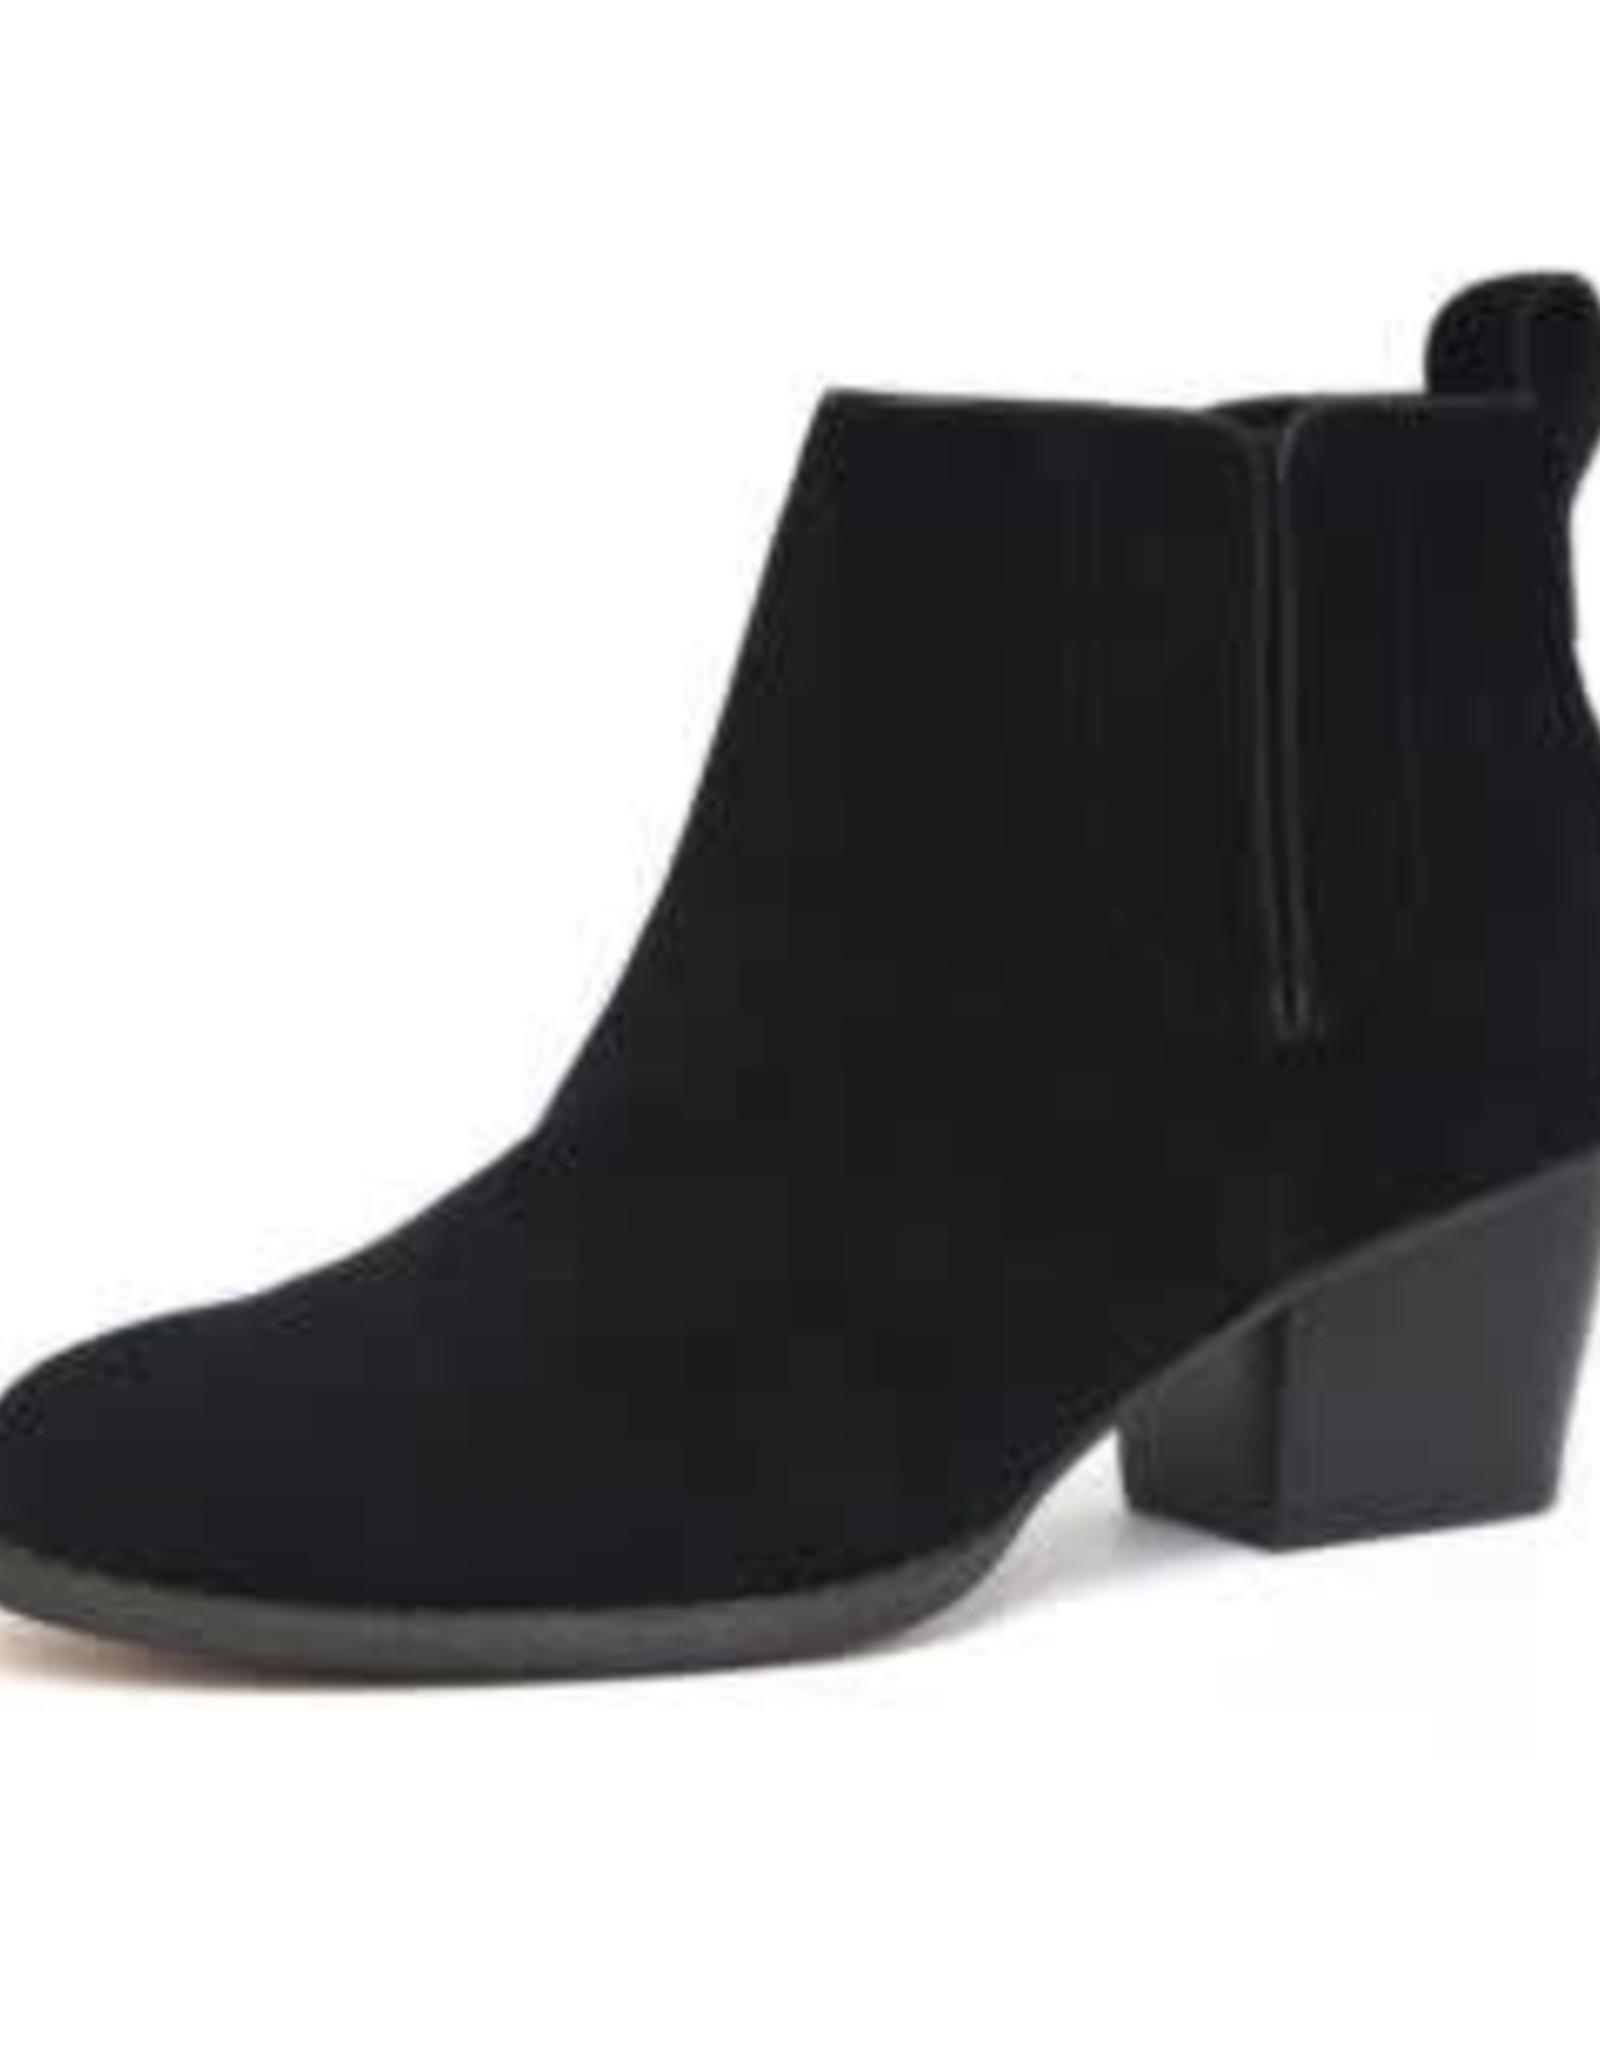 Thomas Cook Thomas Cook Callister Black Suede Boots Size 7